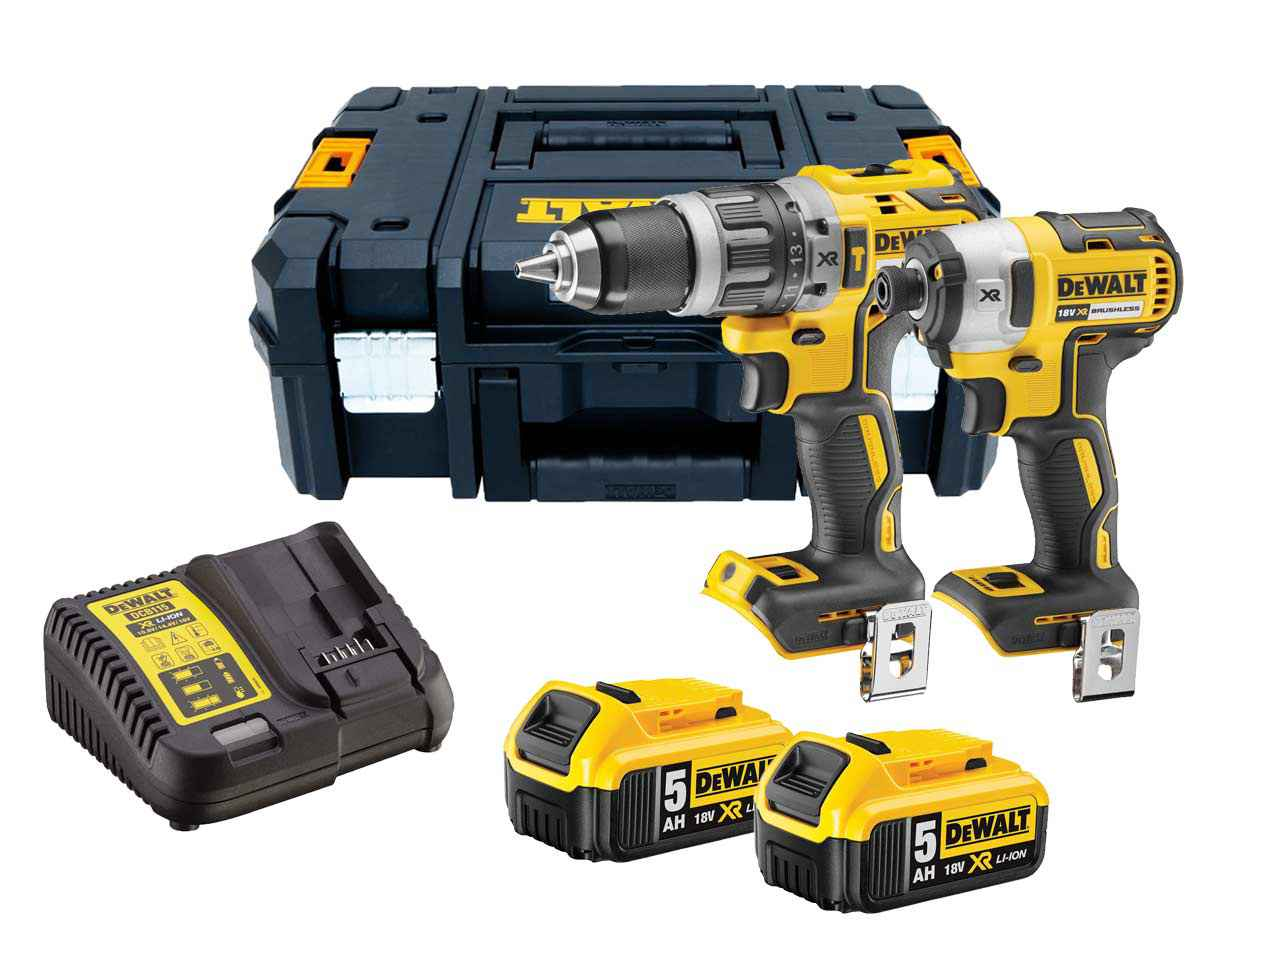 dewalt dck266p2 gb xr 18v brushless ia combi impact kit. Black Bedroom Furniture Sets. Home Design Ideas